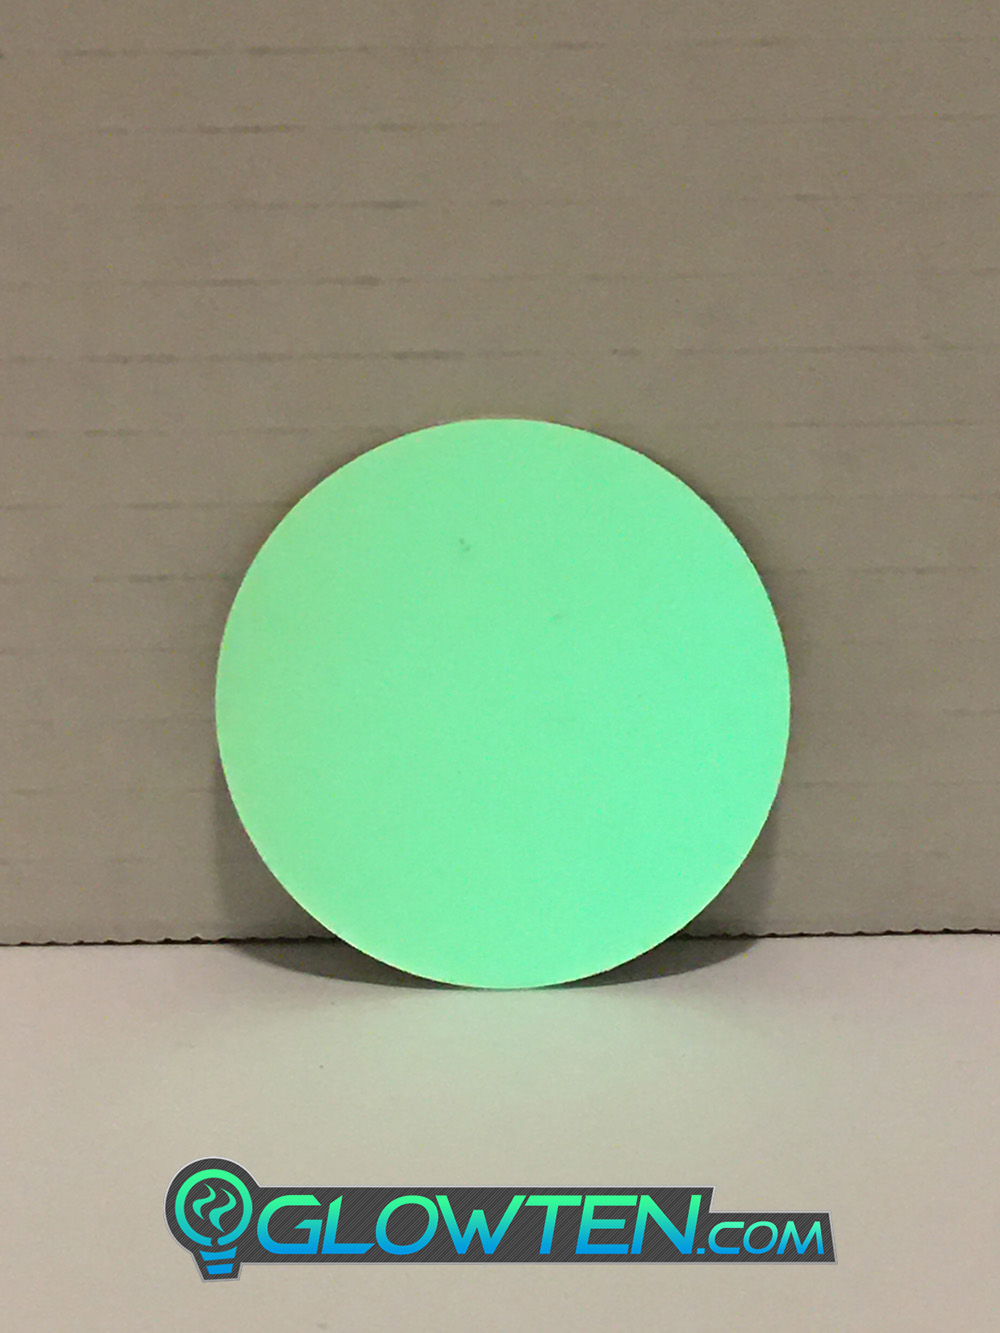 GLOWTEN.com - CIRCLE PLAQUE Glow in the Dark Stairs Guide Sign Round Eco Friendly Photoluminescent Material Aluminum Body Luminous pic 1 picture photo cap preview pic 1